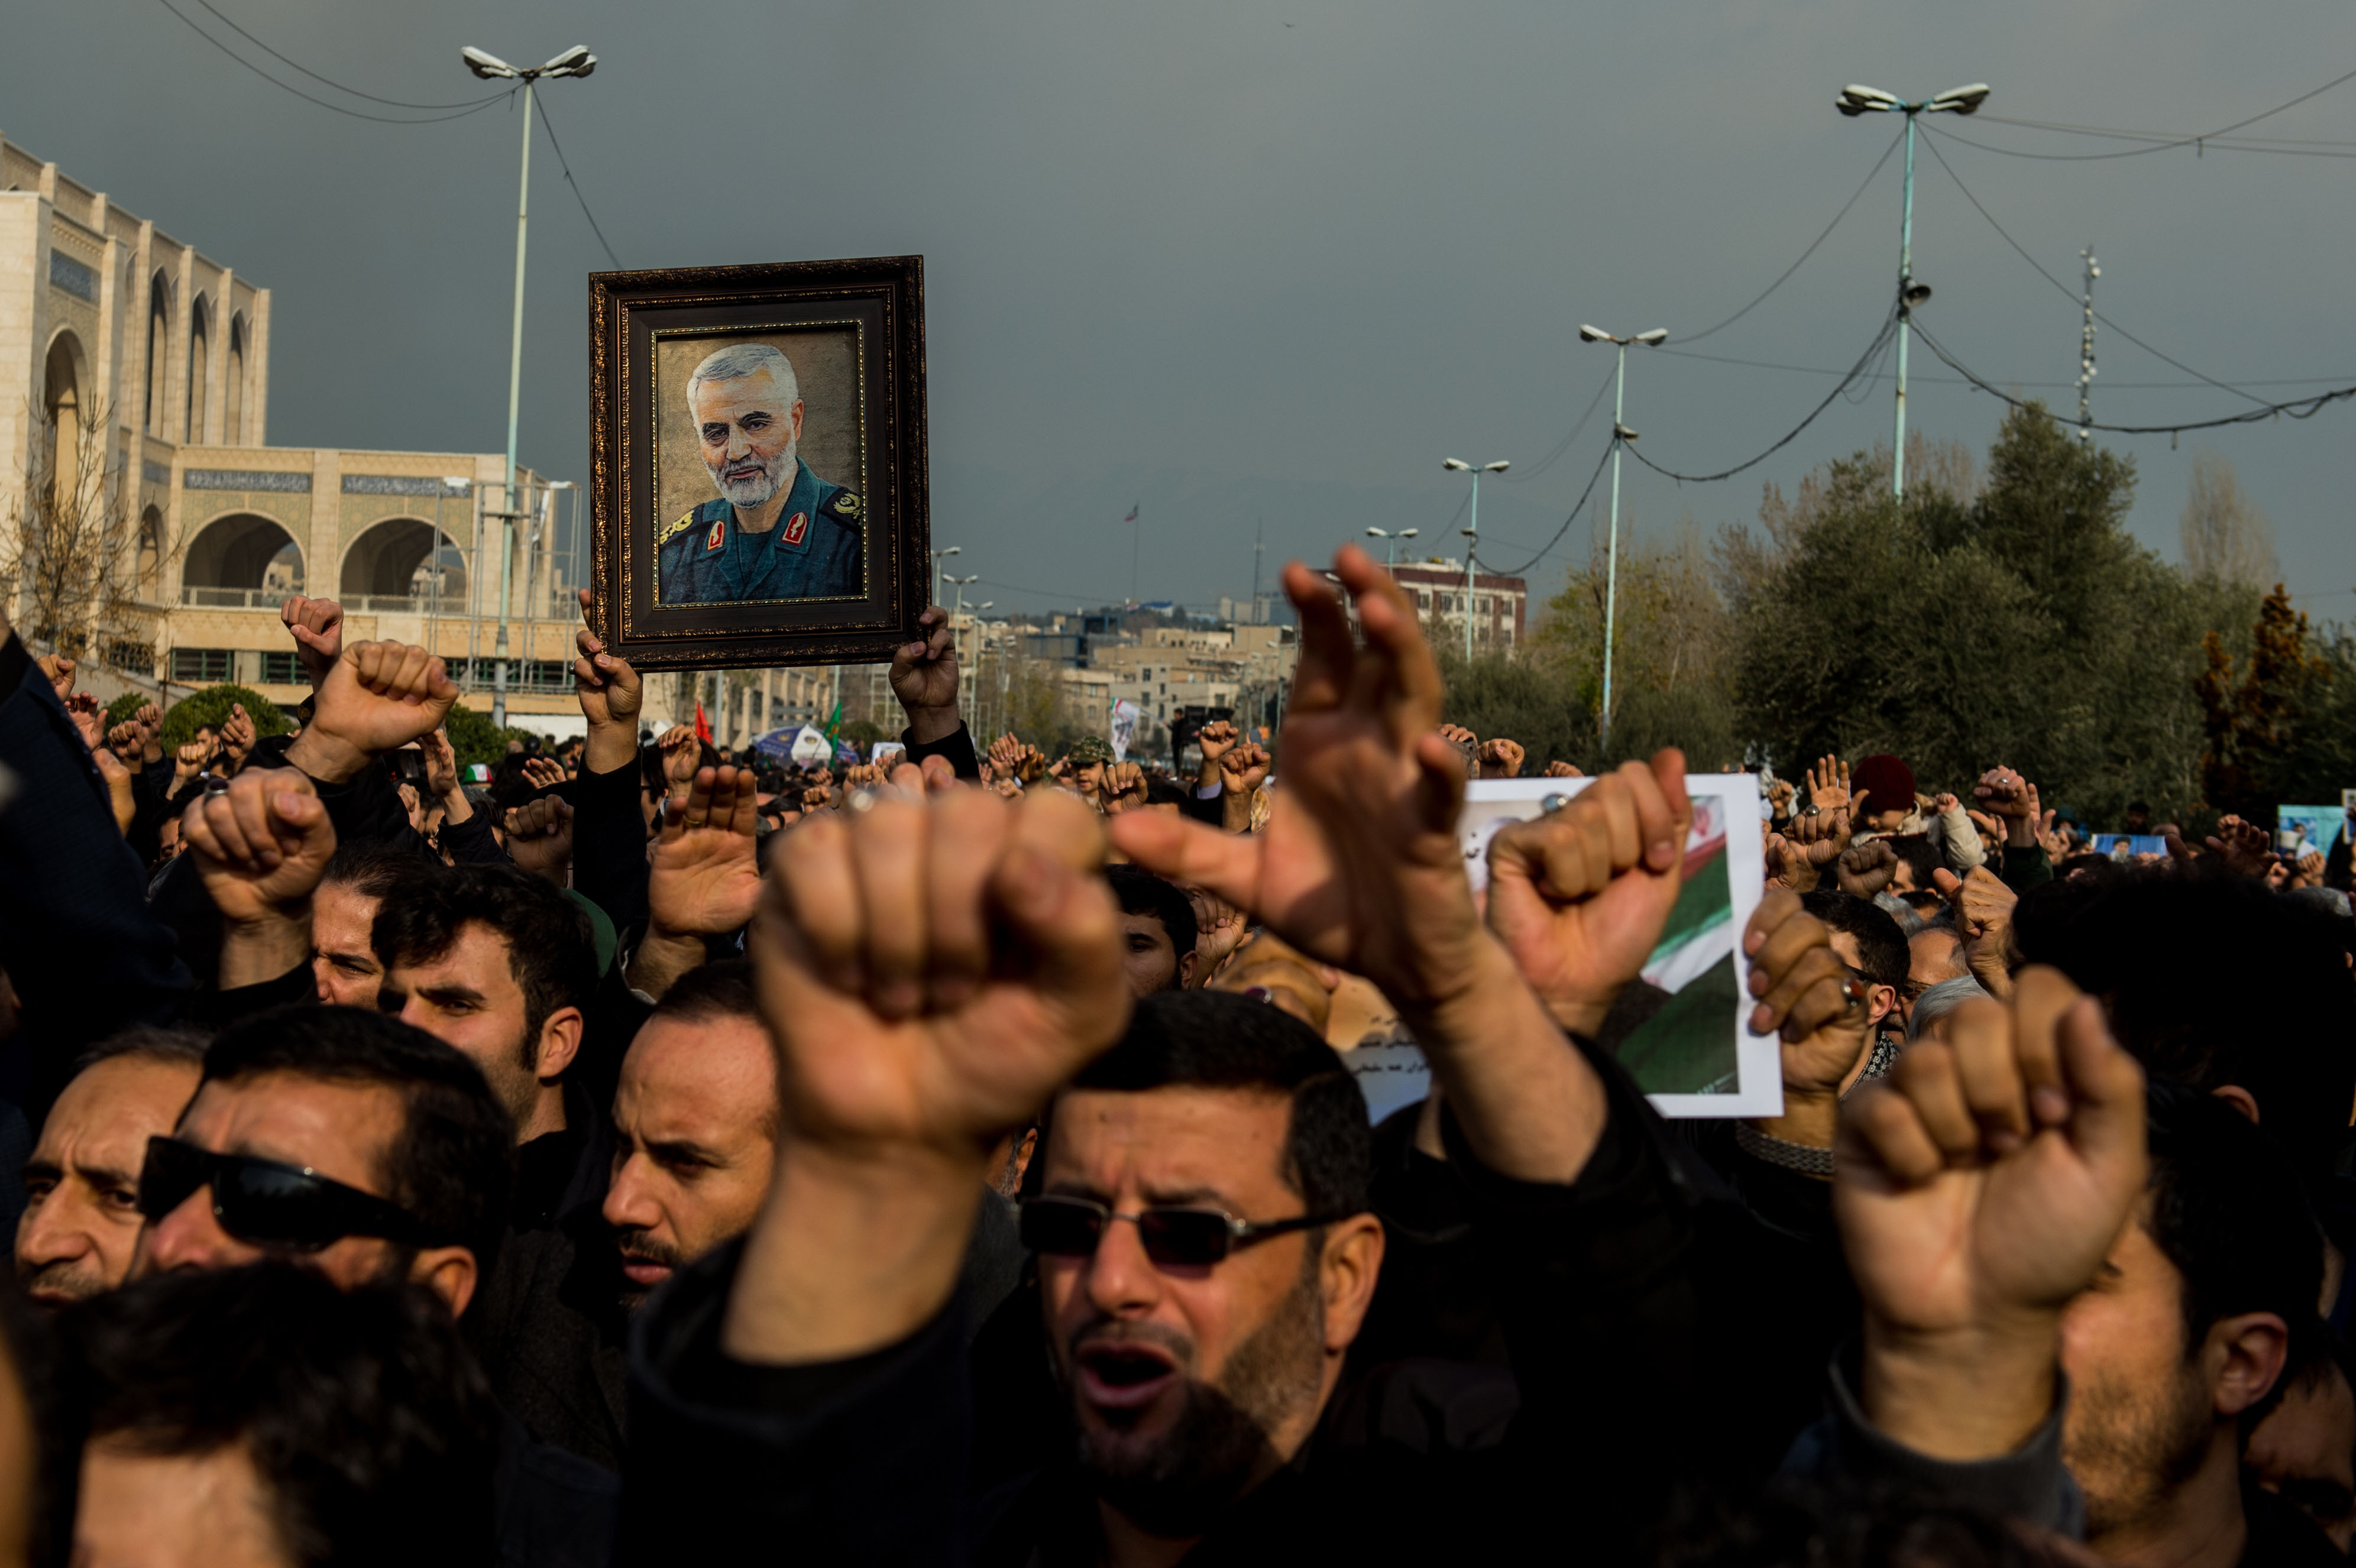 Protesters hold up an image of Qasem Soleimani during a demonstration in Tehran, Iran, following the U.S. airstrike in Iraq which killed him on Jan. 3, 2020.